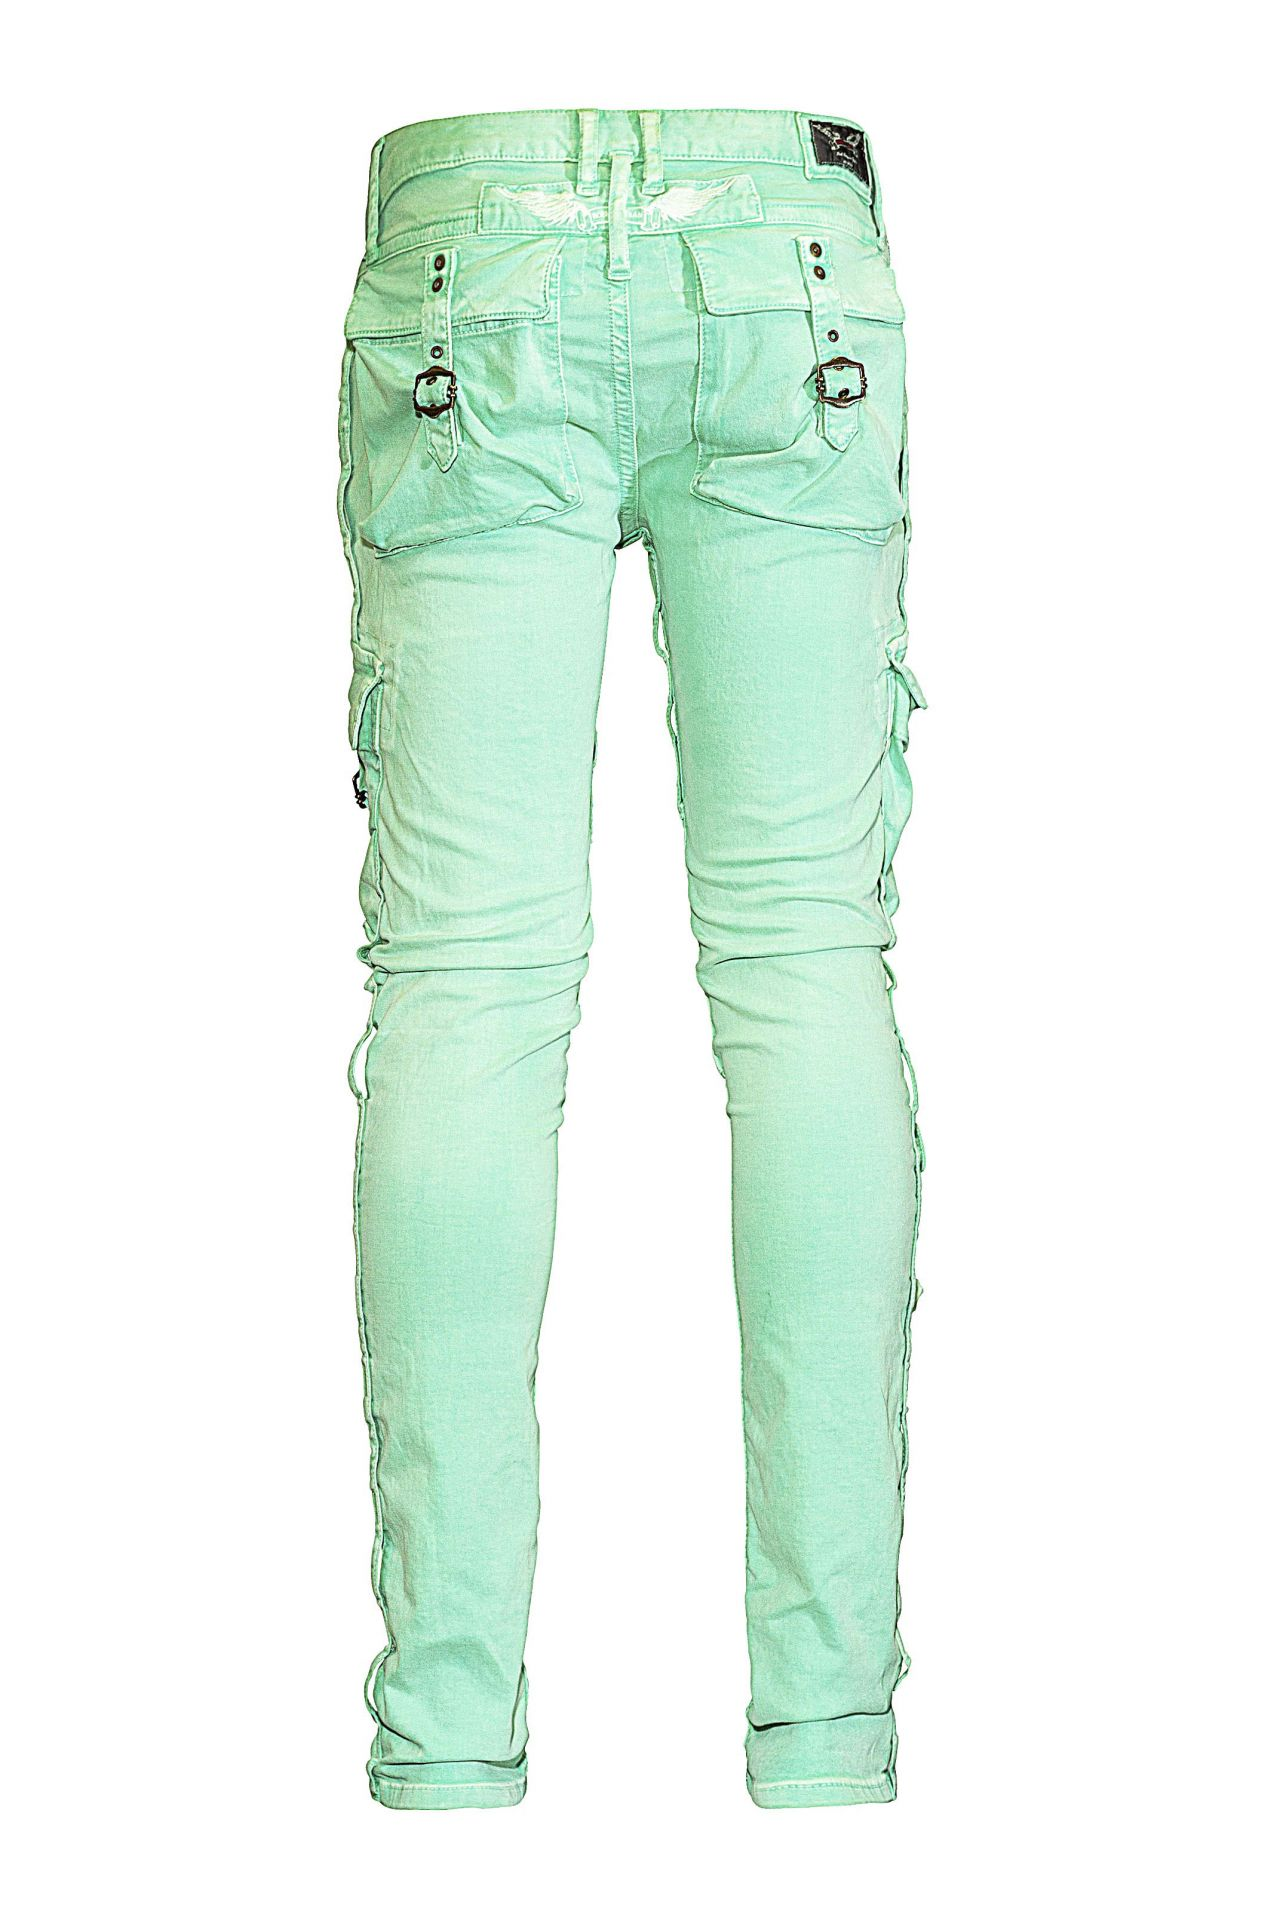 MILITARY CARGO IN LIME GREEN